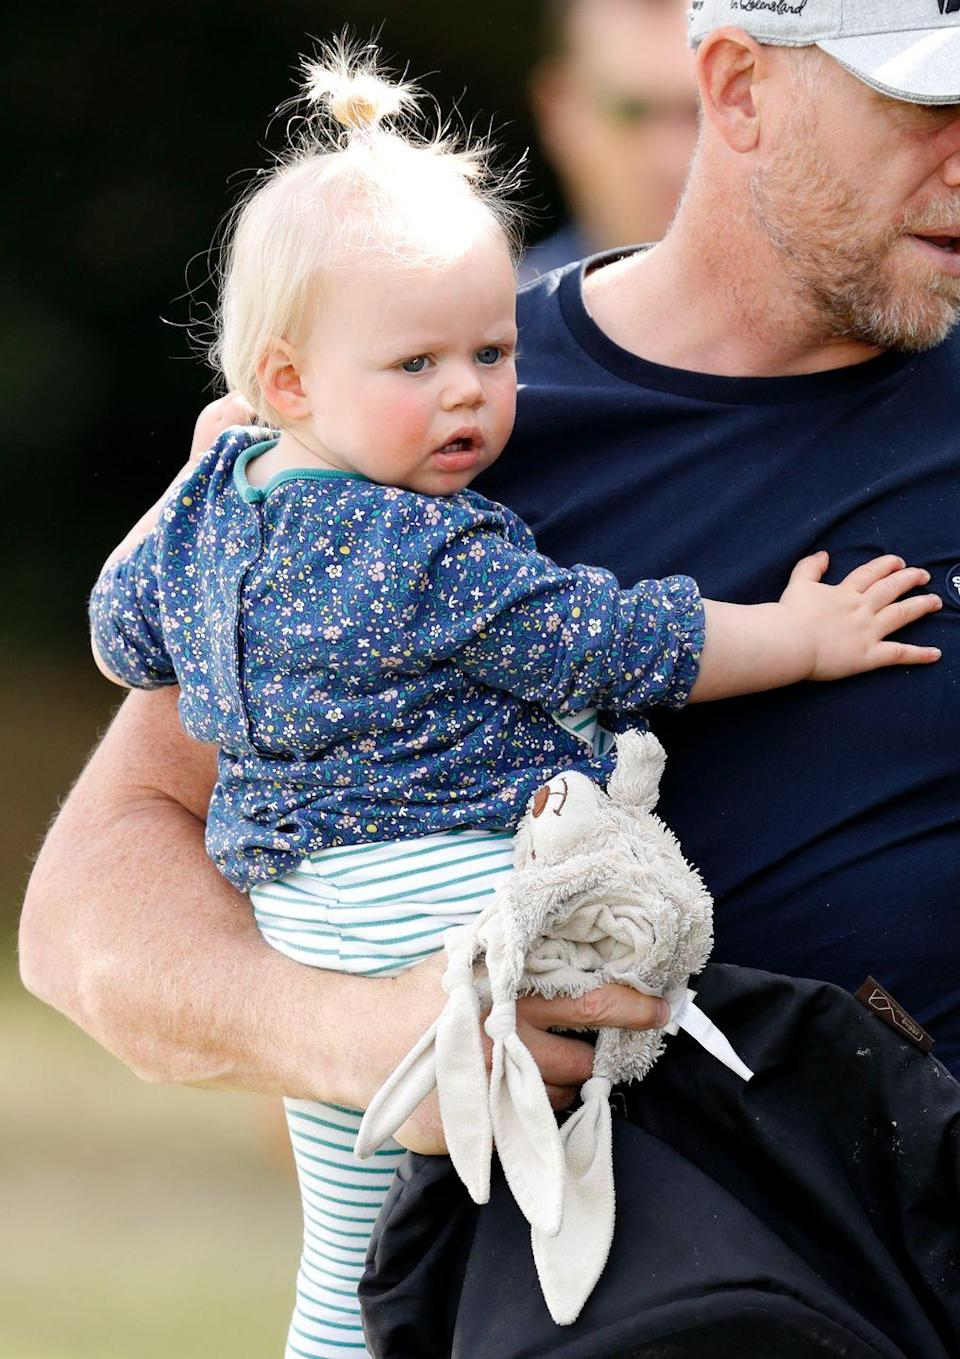 """<p>2018 was an eventful year for the royal family because Zara also <a href=""""https://www.cosmopolitan.com/entertainment/a21968518/zara-tindall-daughter-baby-name-royal-family/"""" rel=""""nofollow noopener"""" target=""""_blank"""" data-ylk=""""slk:gave birth"""" class=""""link rapid-noclick-resp"""">gave birth</a> to her daughter Lena Elizabeth, who was named after the queen, on June 19. Baby Louis and Lena Elizabeth are definitely playdate buddies. </p>"""